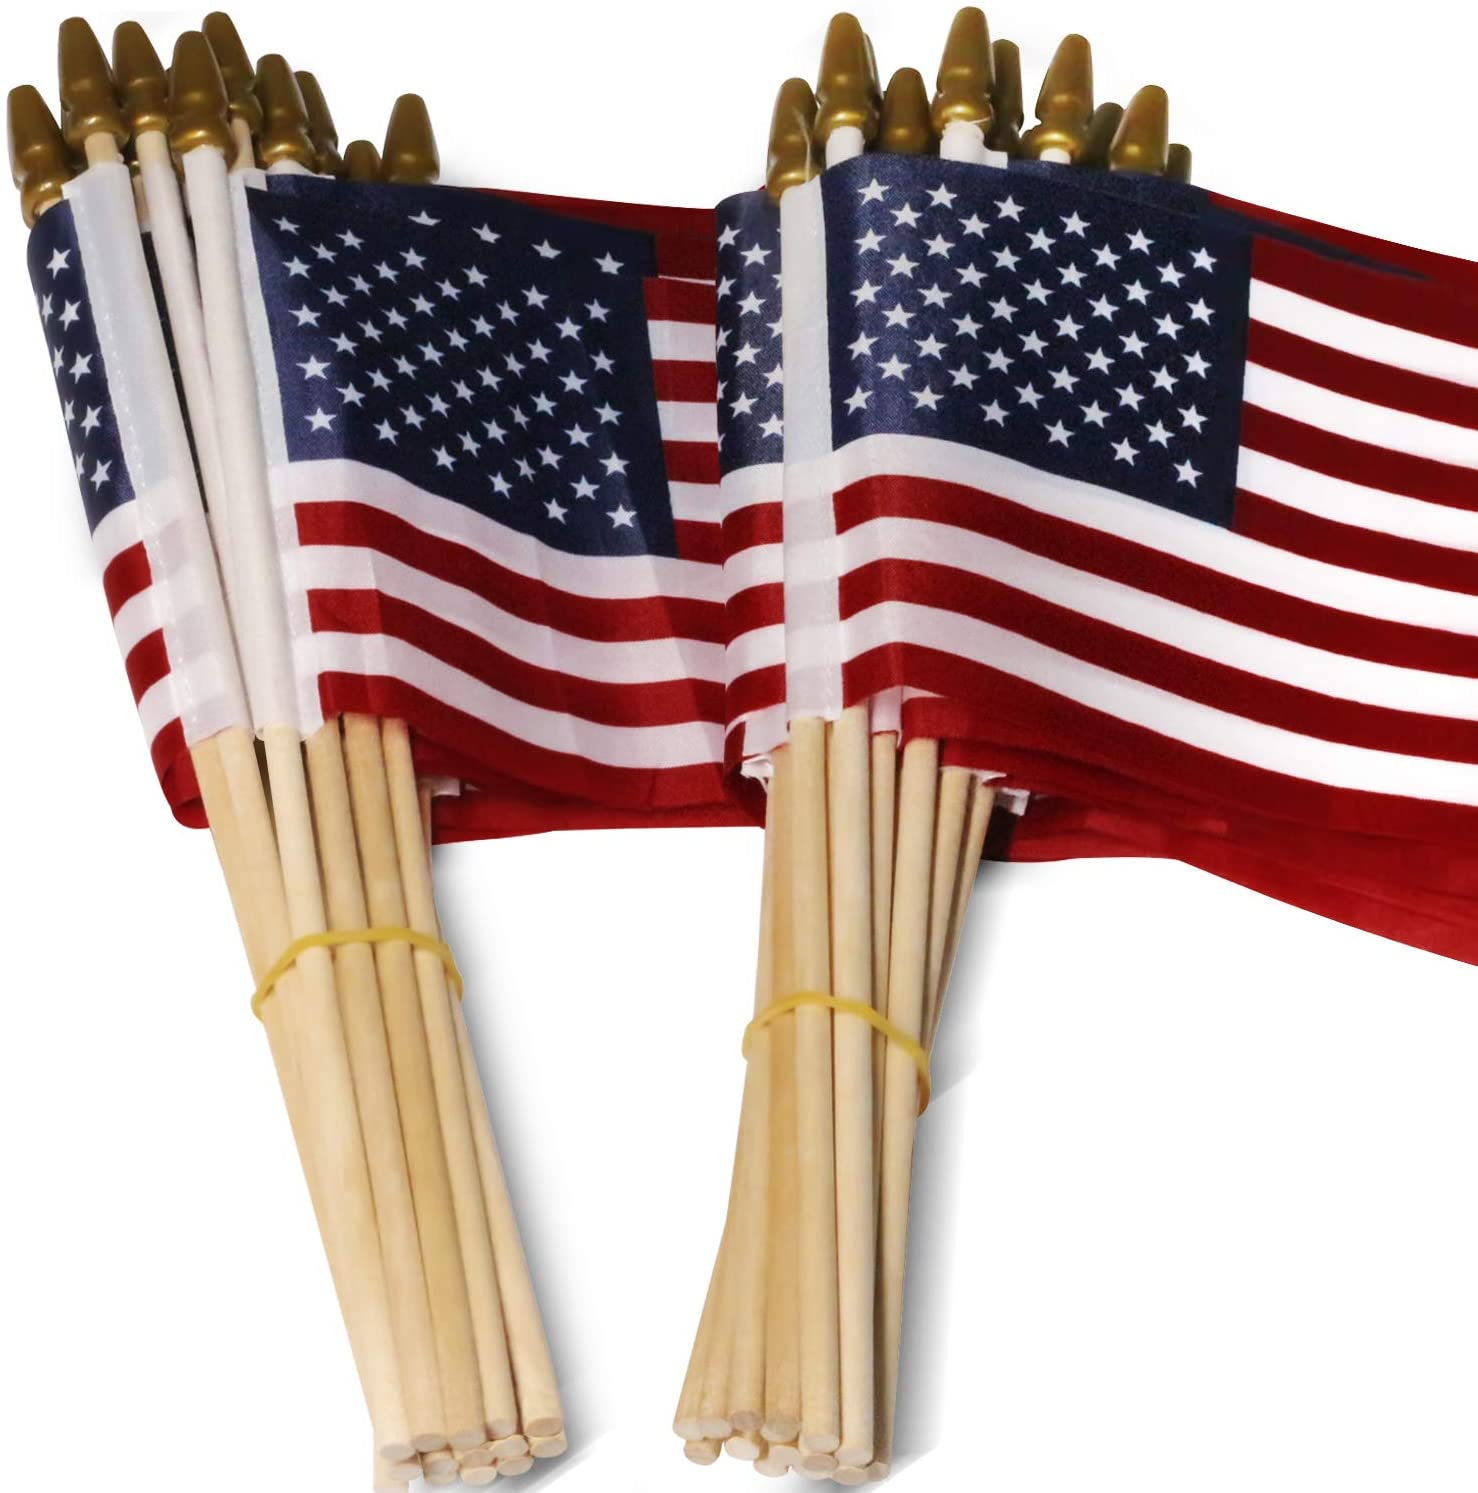 Anley LOT of 50 USA 4x6 in Wooden Stick Flag - July 4th Decoration, Veteran Party, Grave Marker, etc. - Handheld American Flag with Kid Safe Golden Spear Top (Pack of 50)